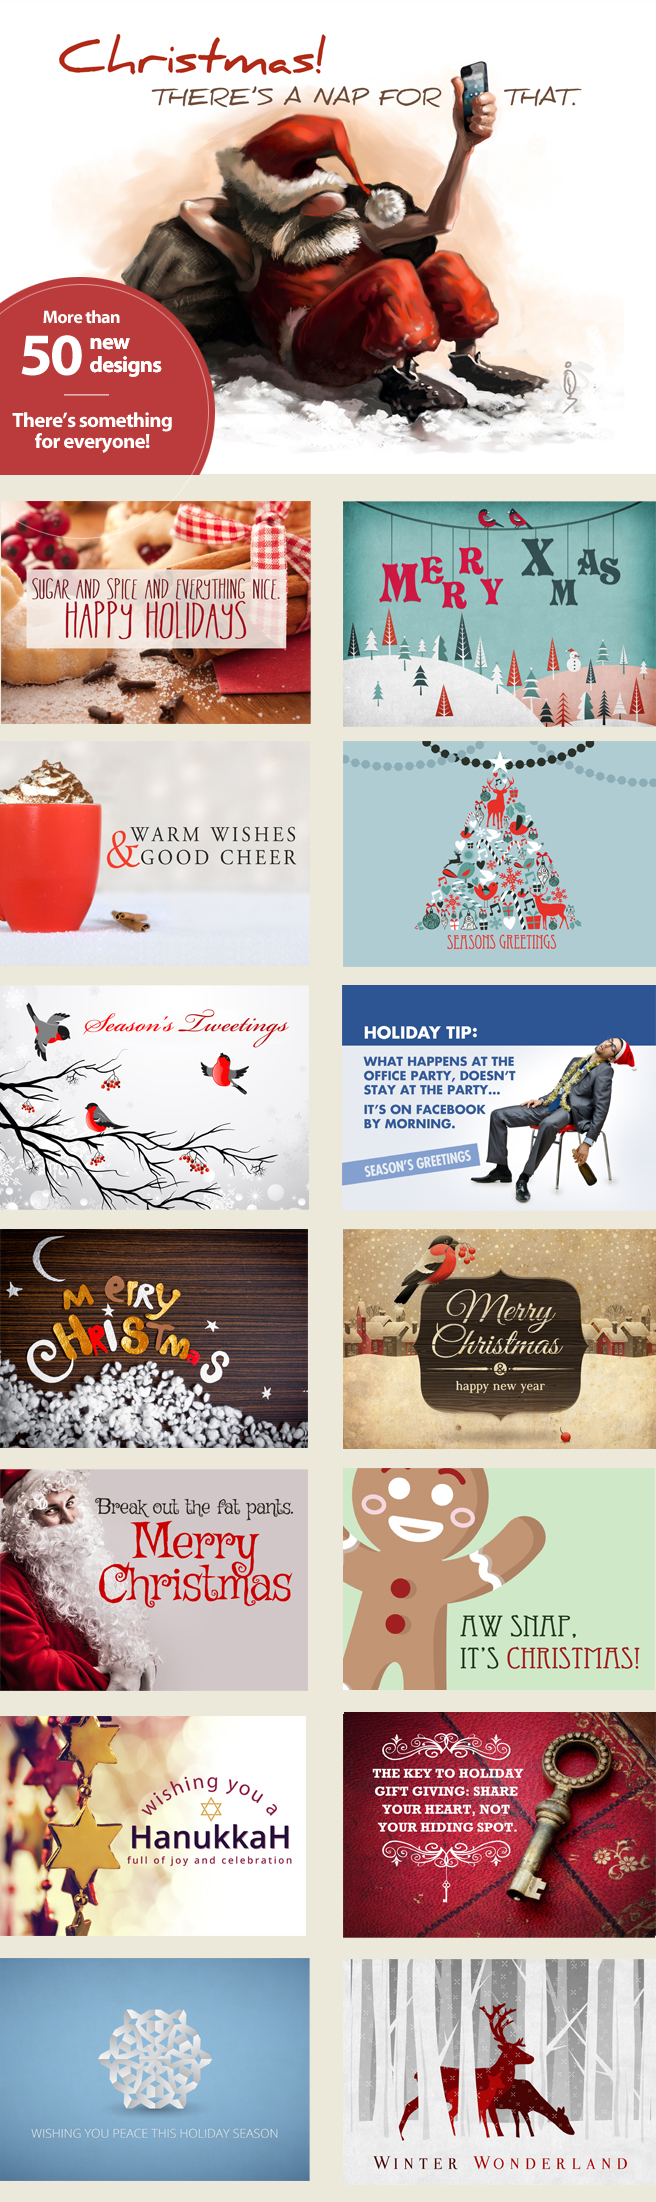 holiday designsblog